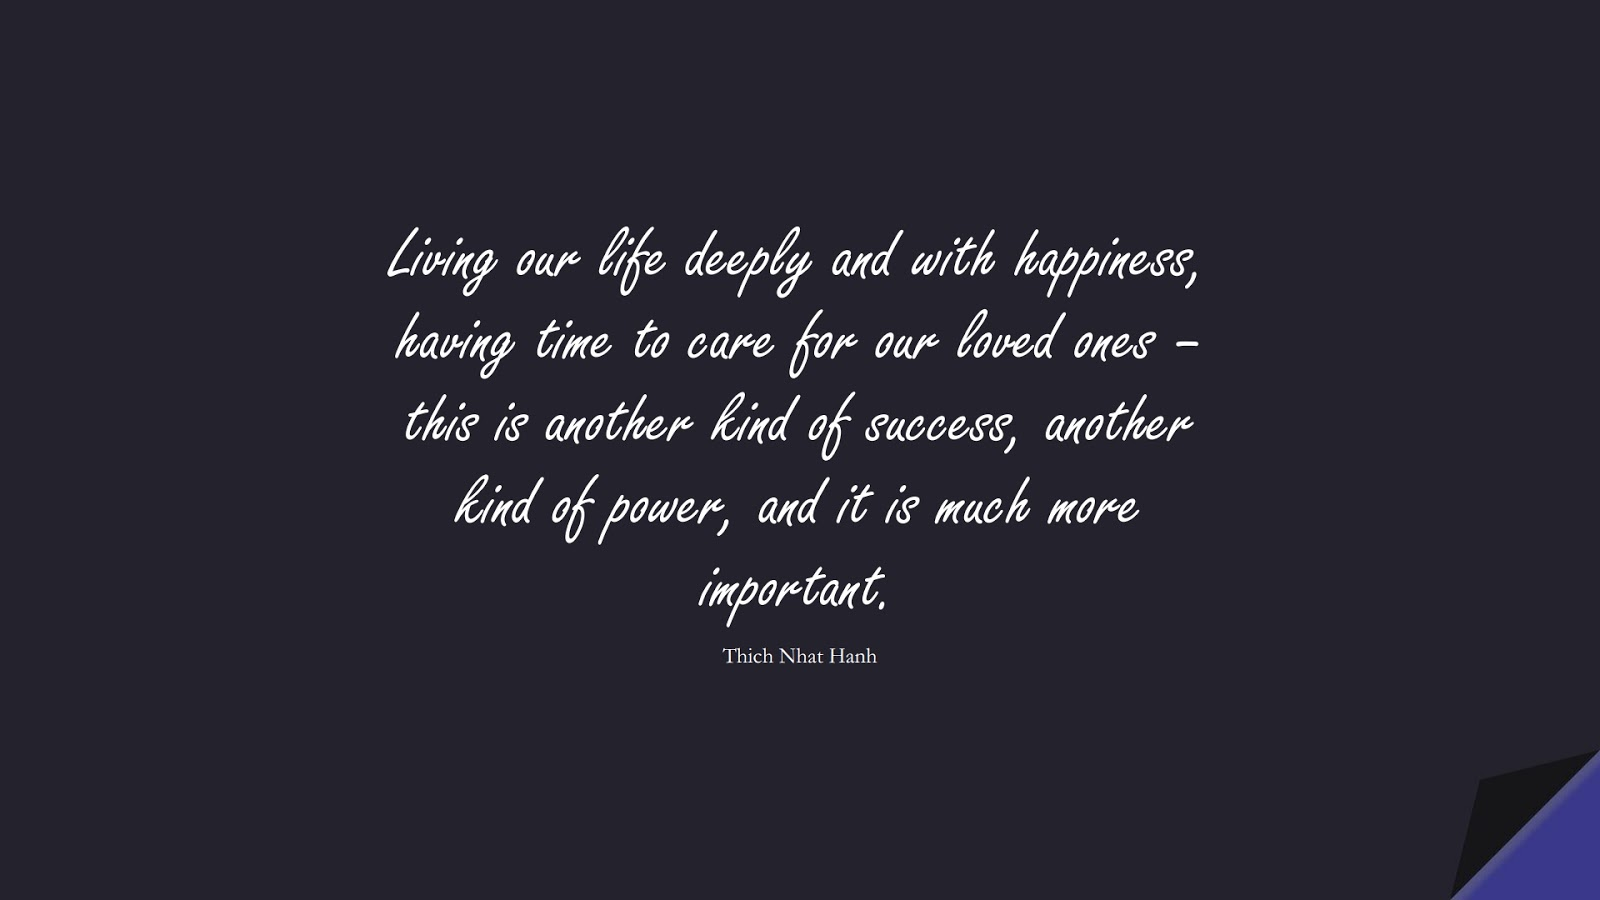 Living our life deeply and with happiness, having time to care for our loved ones – this is another kind of success, another kind of power, and it is much more important. (Thich Nhat Hanh);  #SuccessQuotes